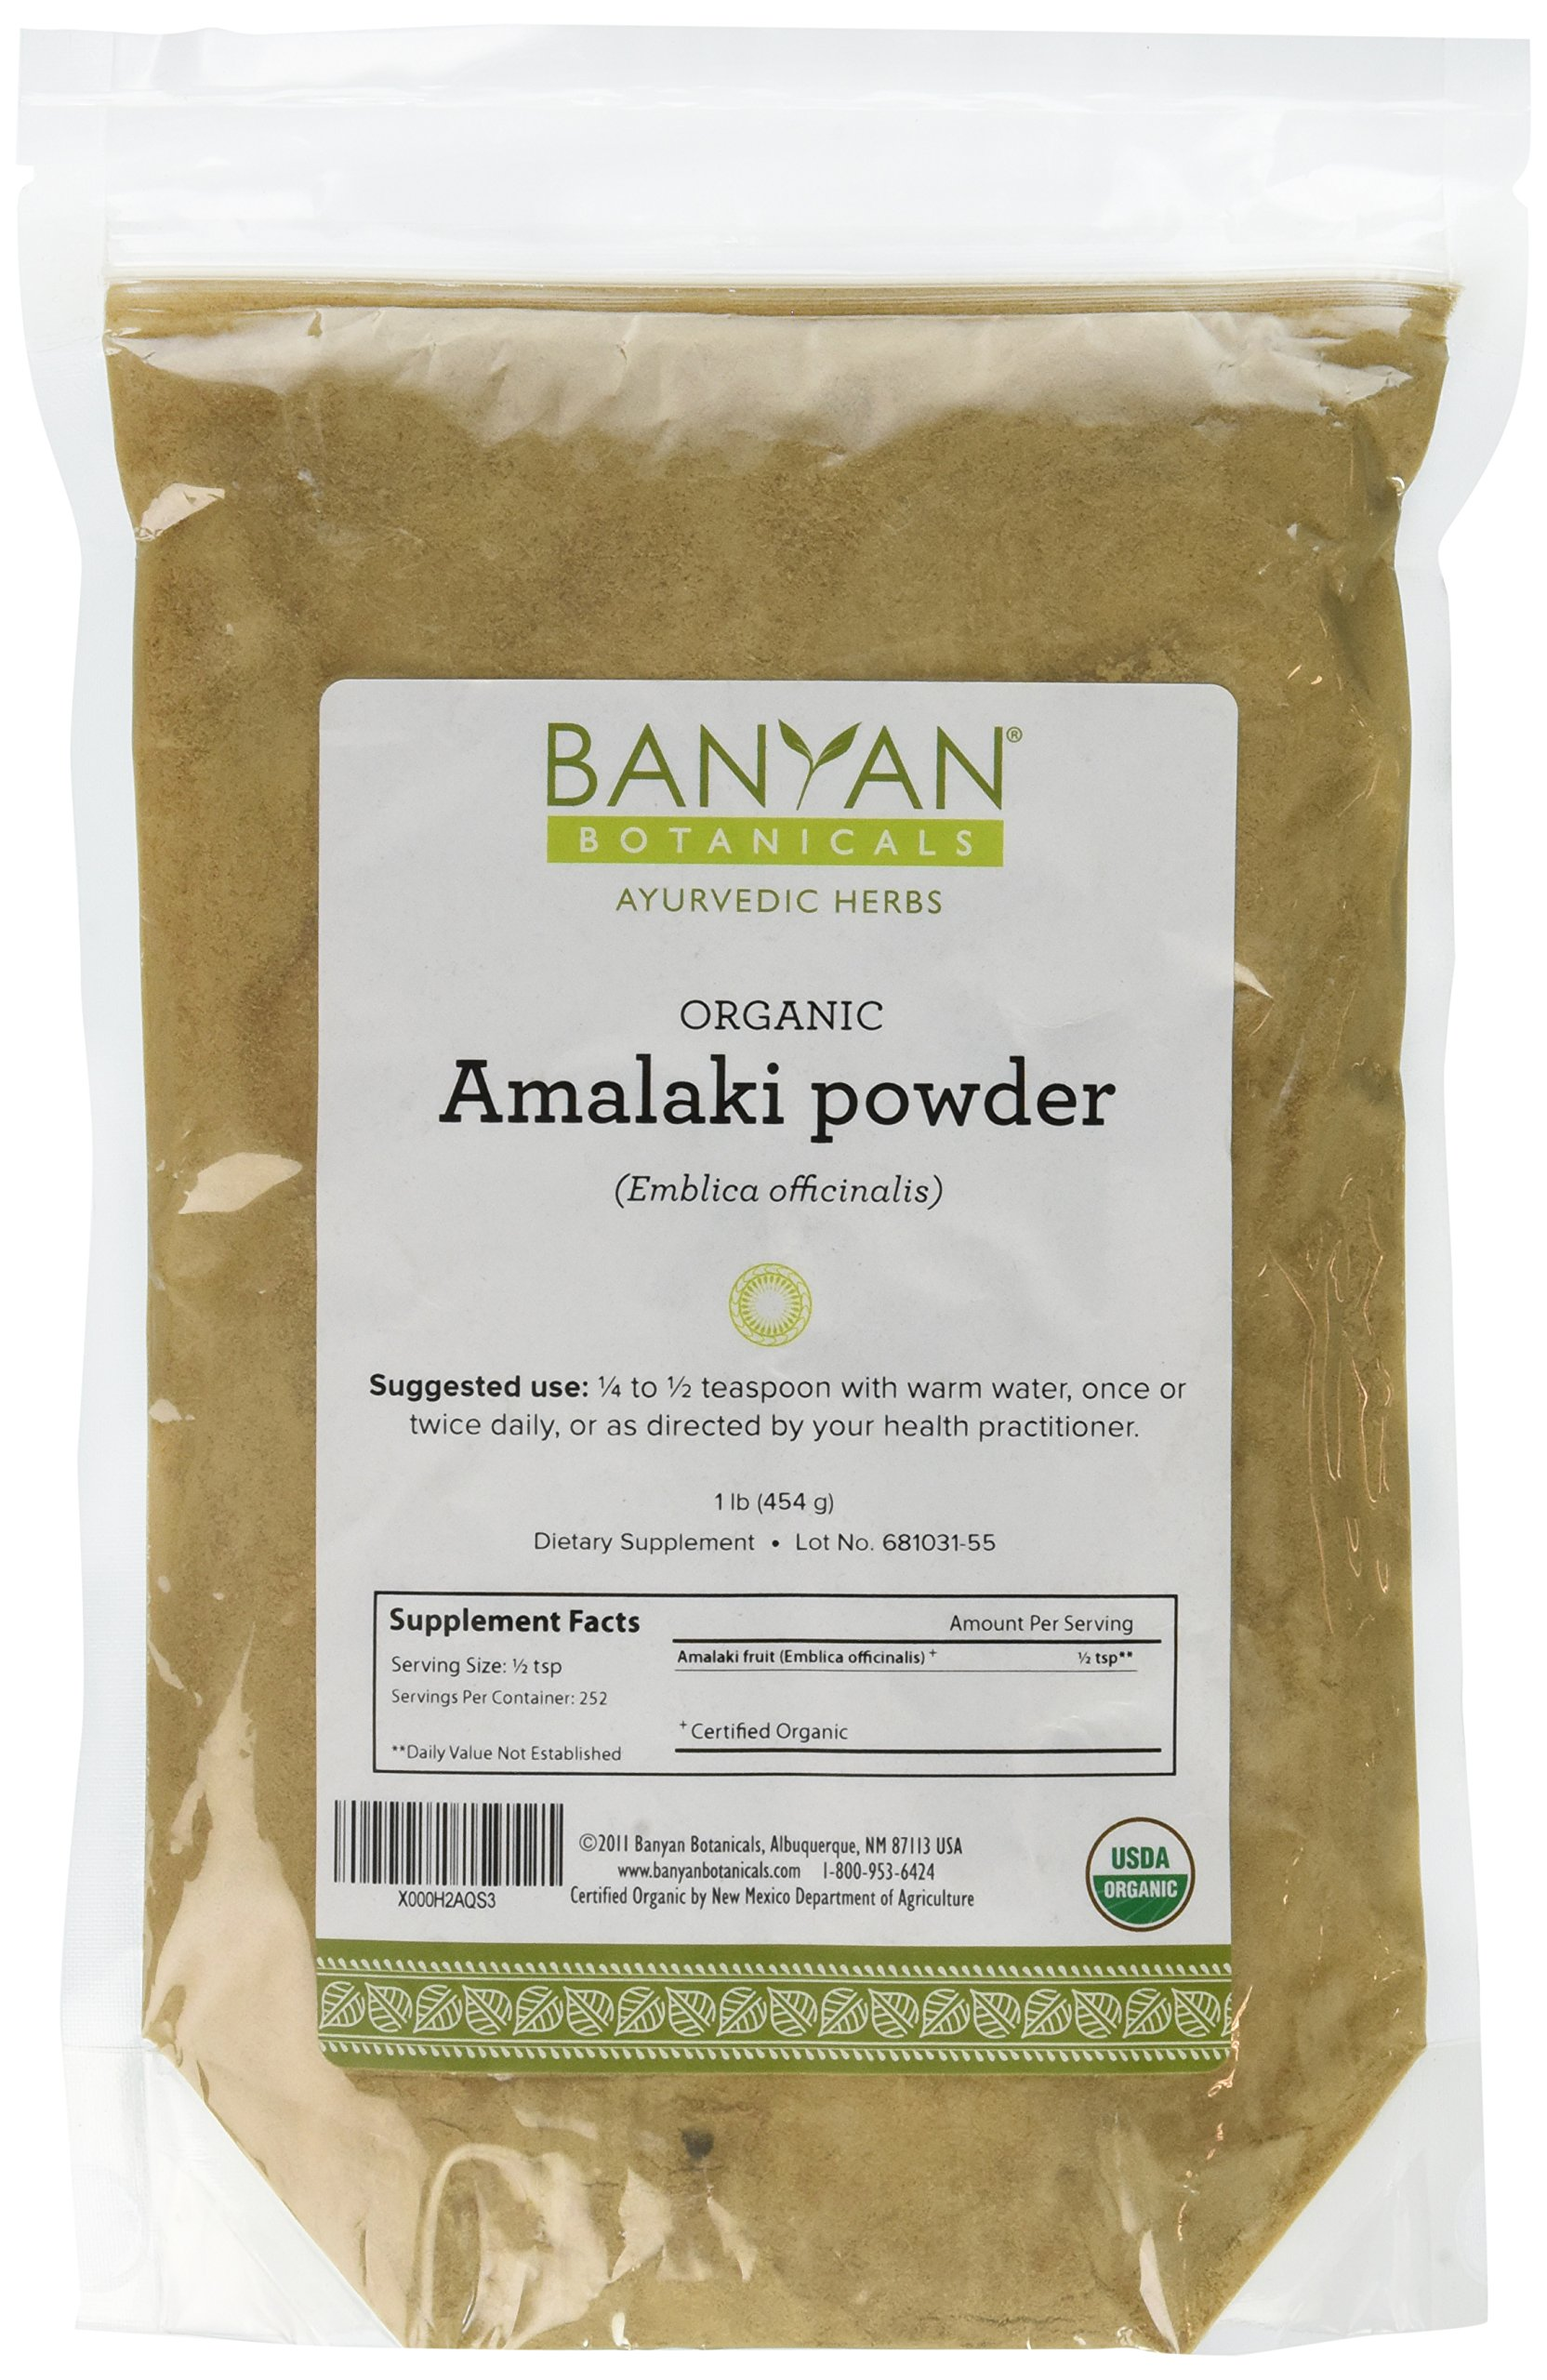 Banyan Botanicals Amalaki (Amla) Powder, 1 Pound - USDA Organic - Emblica officinalis - Ayurvedic Antioxidant for Hair, Skin, & Digestion*